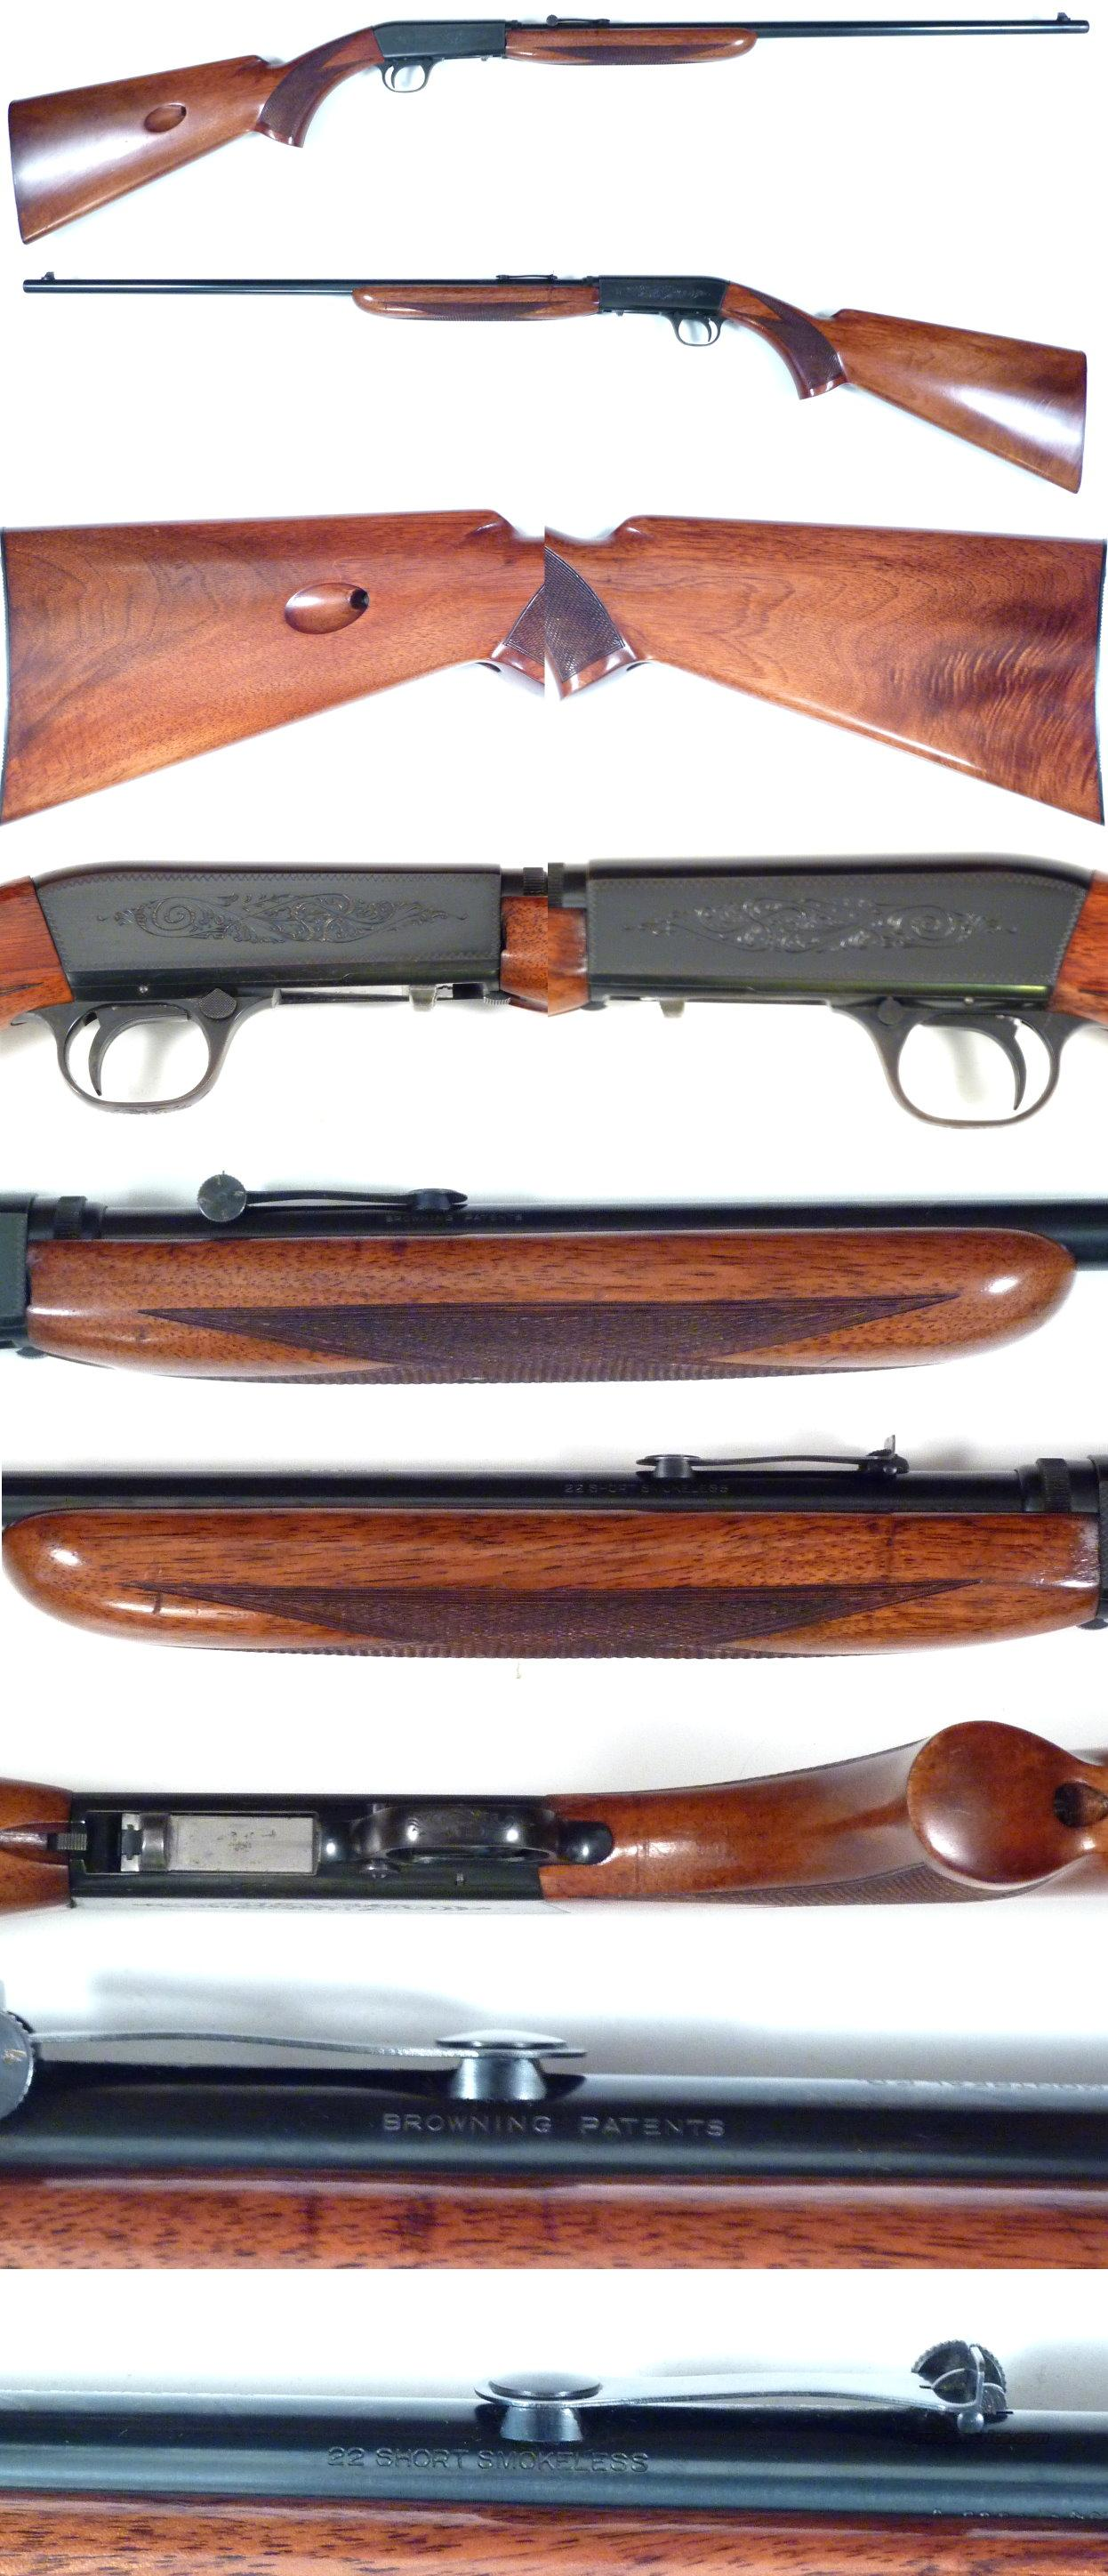 50's Belgium Browning 22 auto thumbwheel SHORT  Guns > Rifles > Browning Rifles > Semi Auto > Hunting